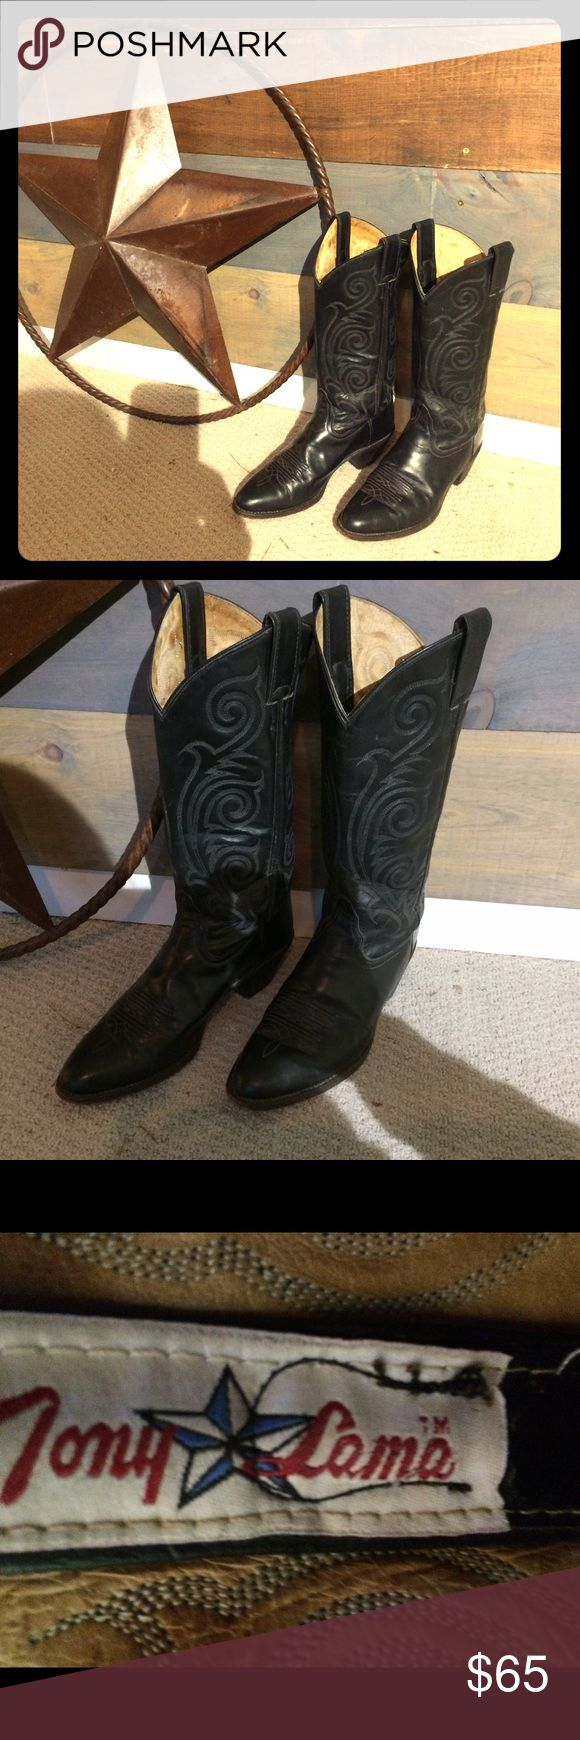 Vintage Tony Lama cowboy boots Black 1972 Tony Lama Cowboy boots. Women's size 7. 1.5 inch heel and 30 inch shaft(sole to top). Great condition Tony Lama Shoes Heeled Boots